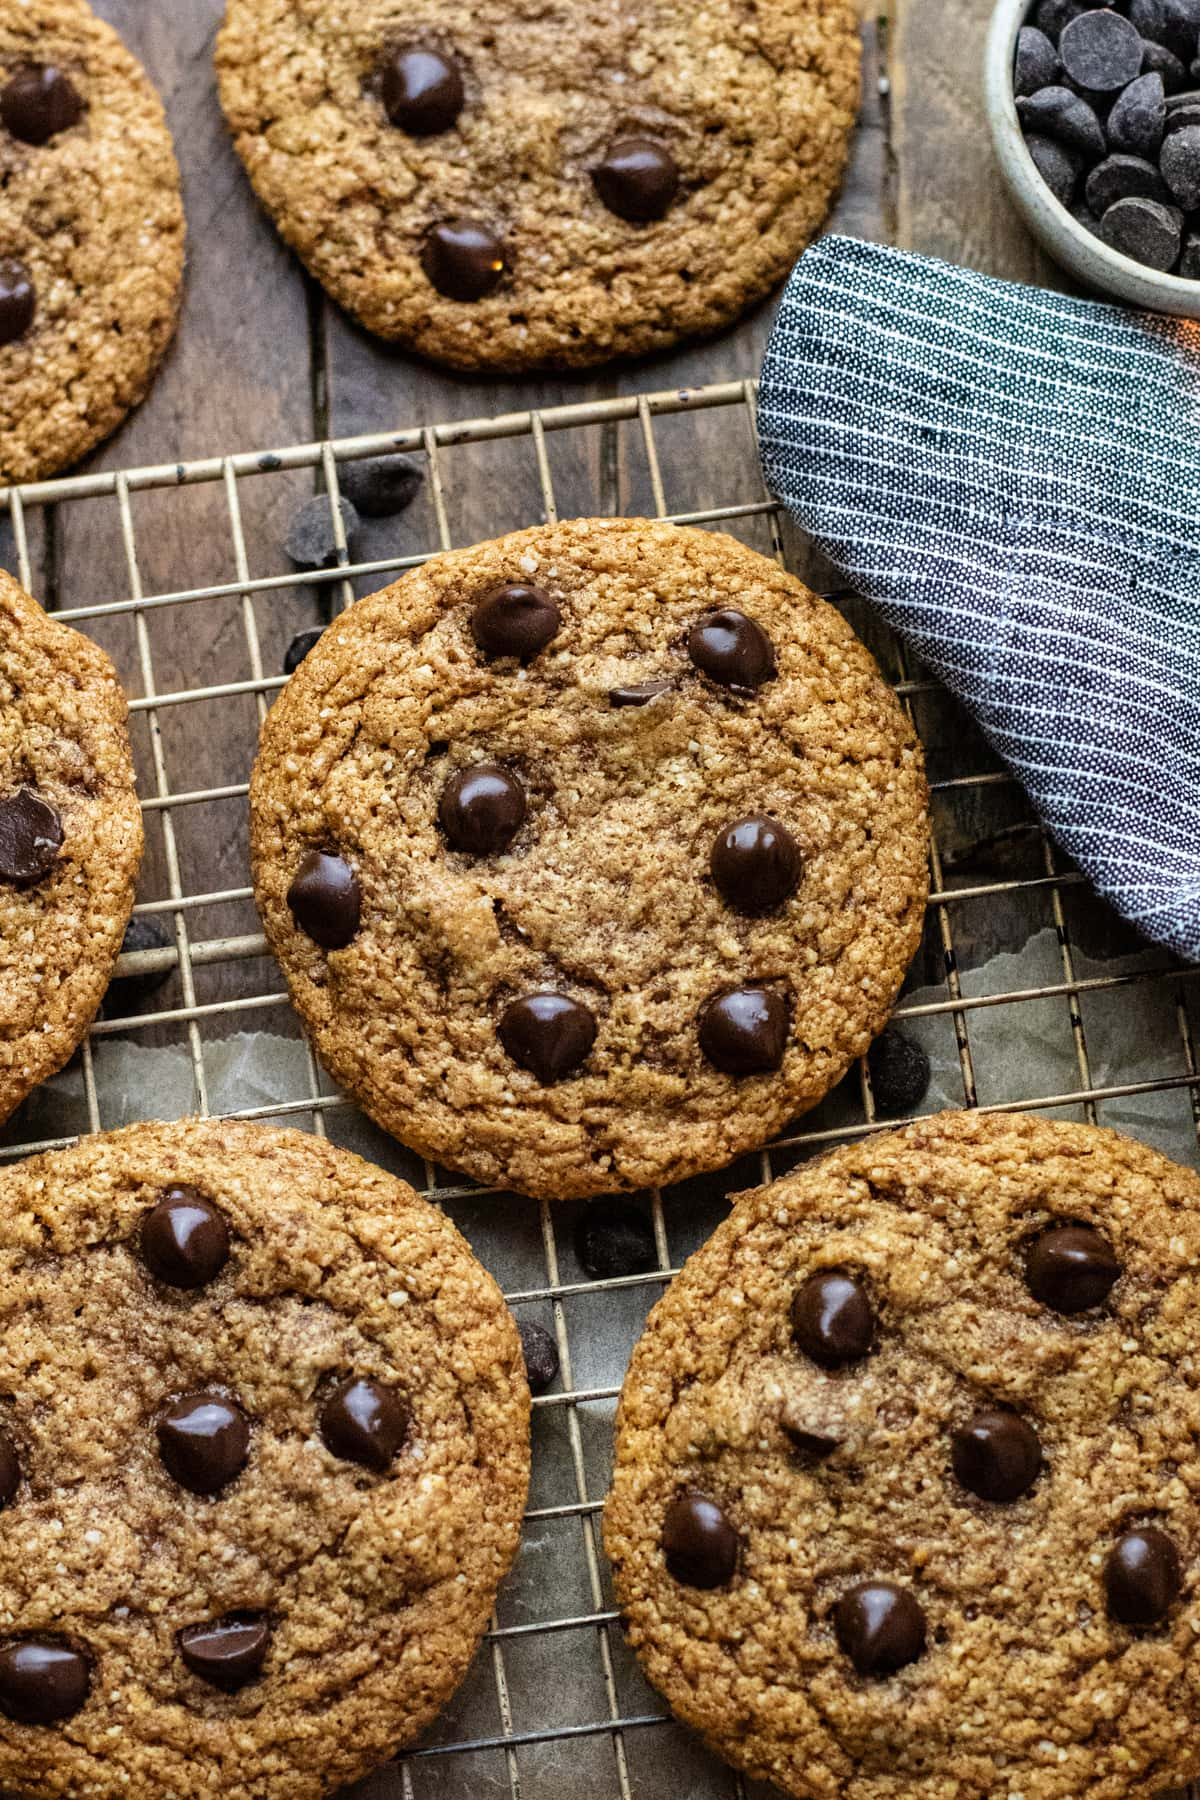 chocolate chip almond nutter cookies arranged on cooling wrack with dark blue napkin next to it.